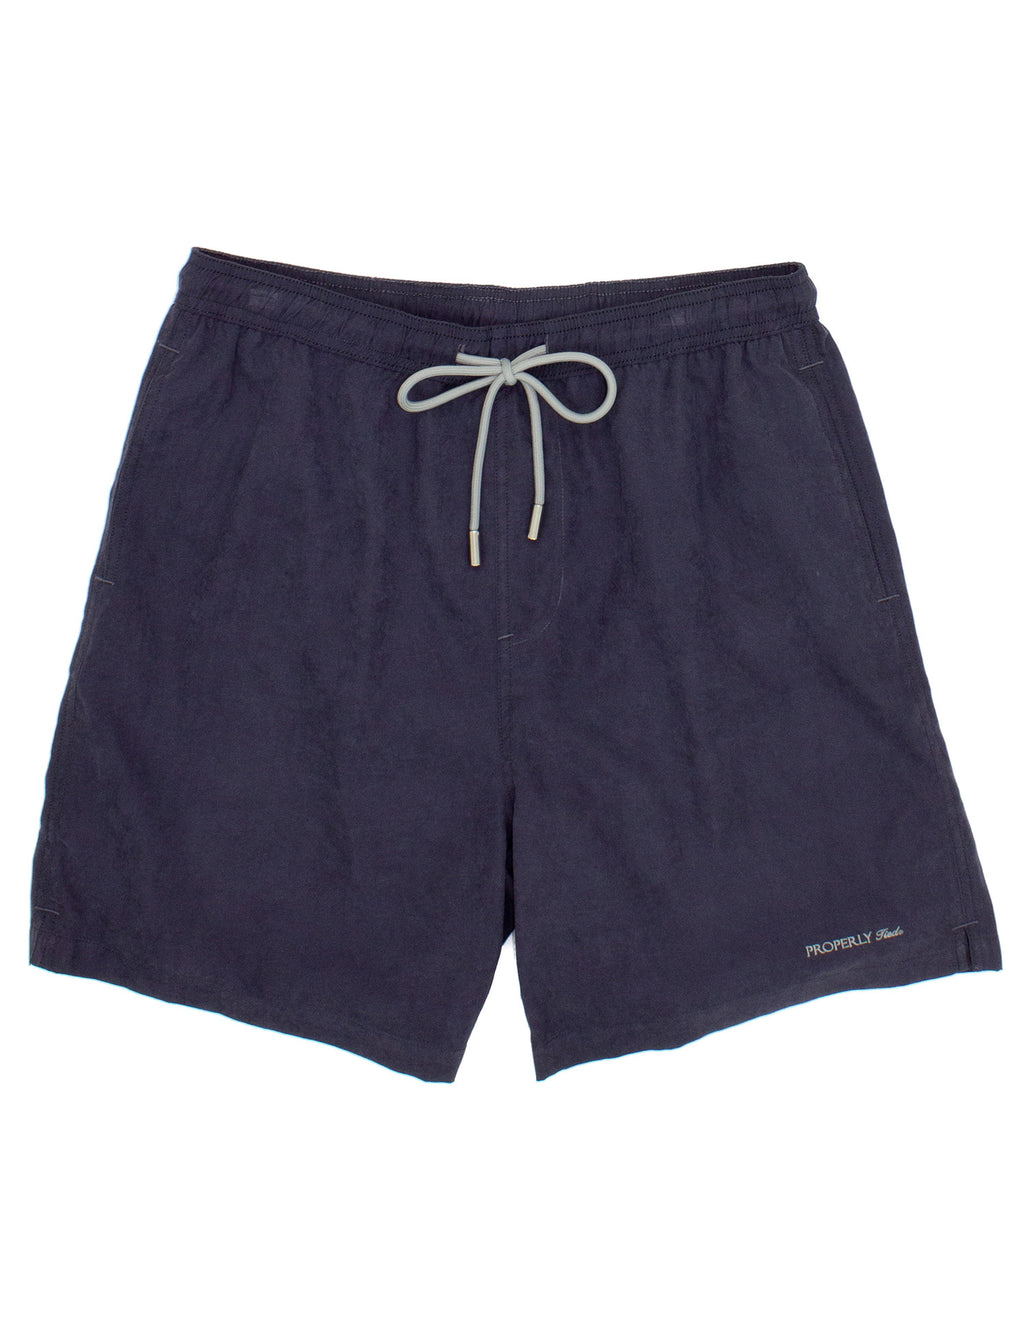 Properly Tied Boys Swim Trunks - Charcoal